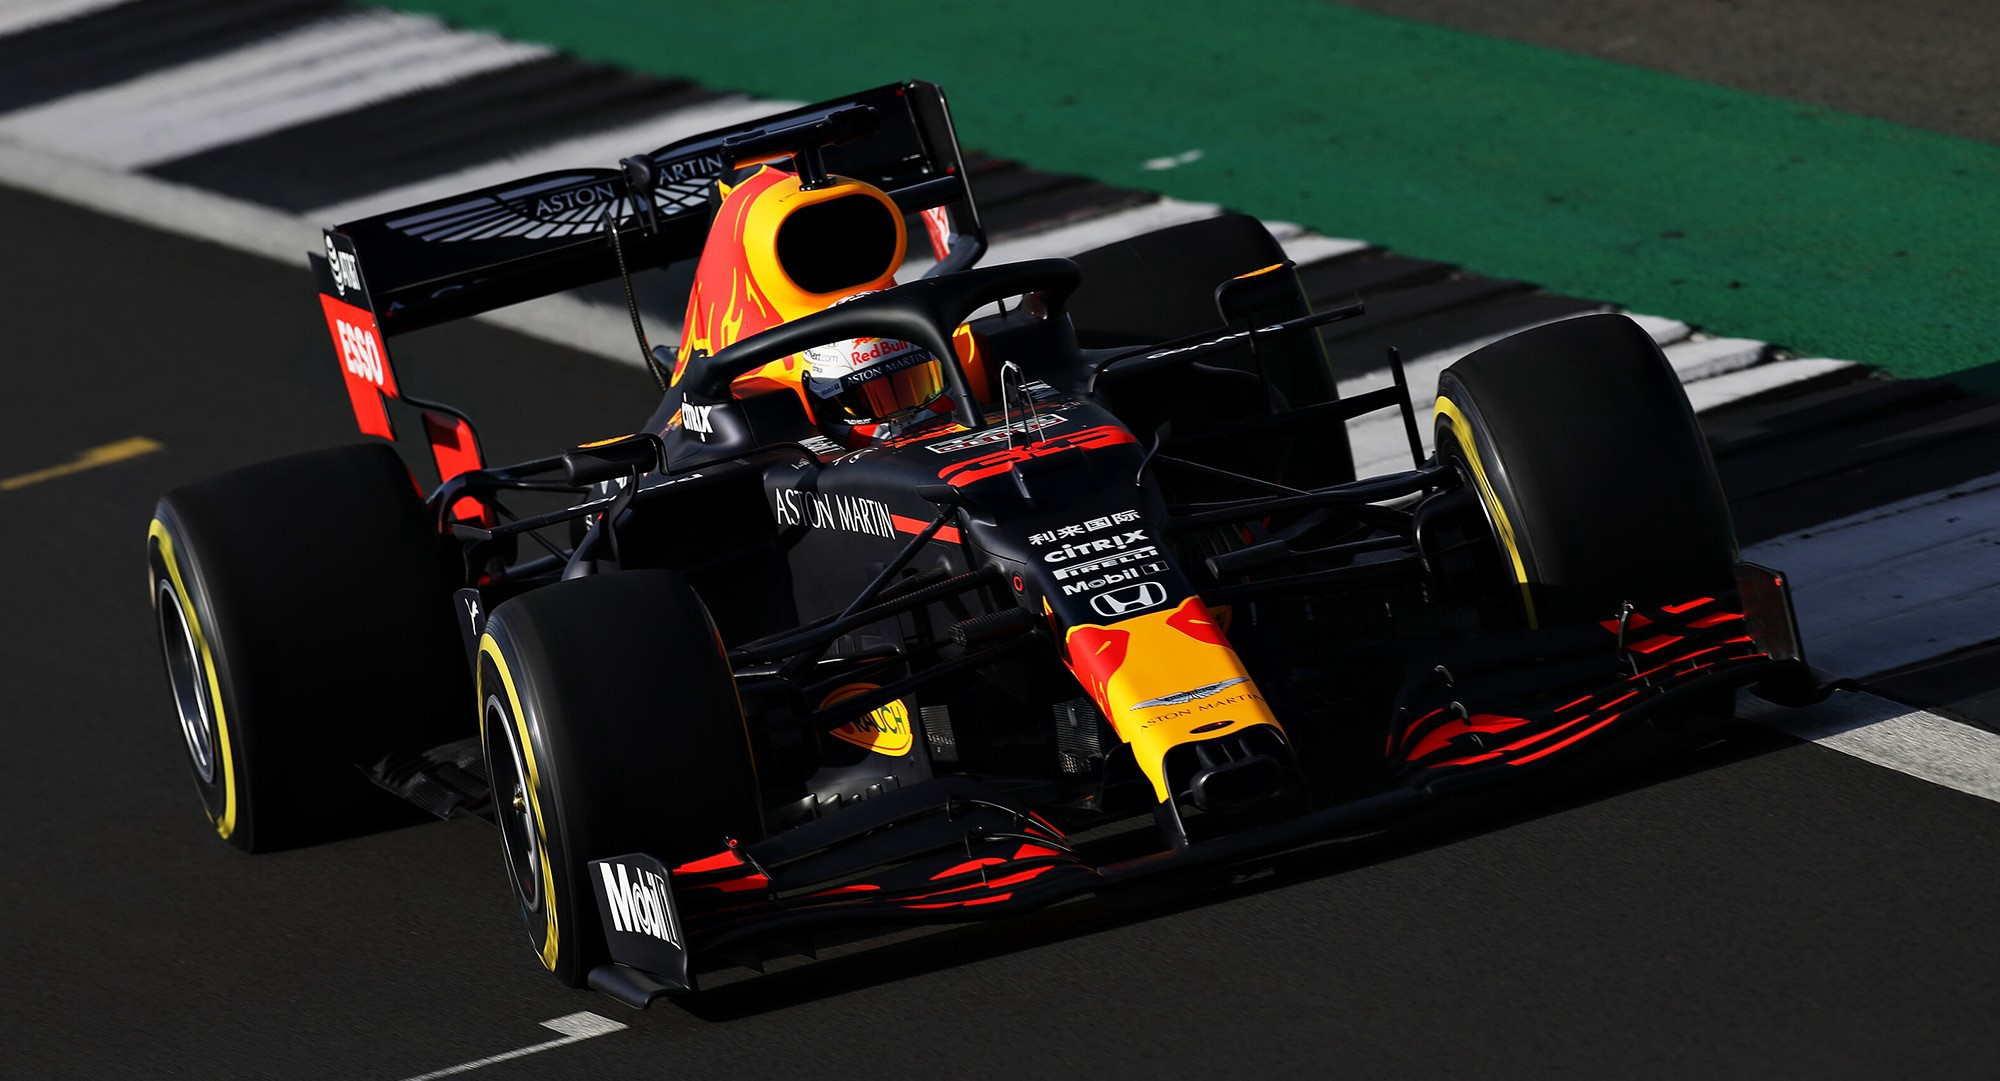 The Race To The Race How Aston Martin Red Bull Racing Turns Data Into Speed By Enterprise Nxt Enterprise Nxt Medium